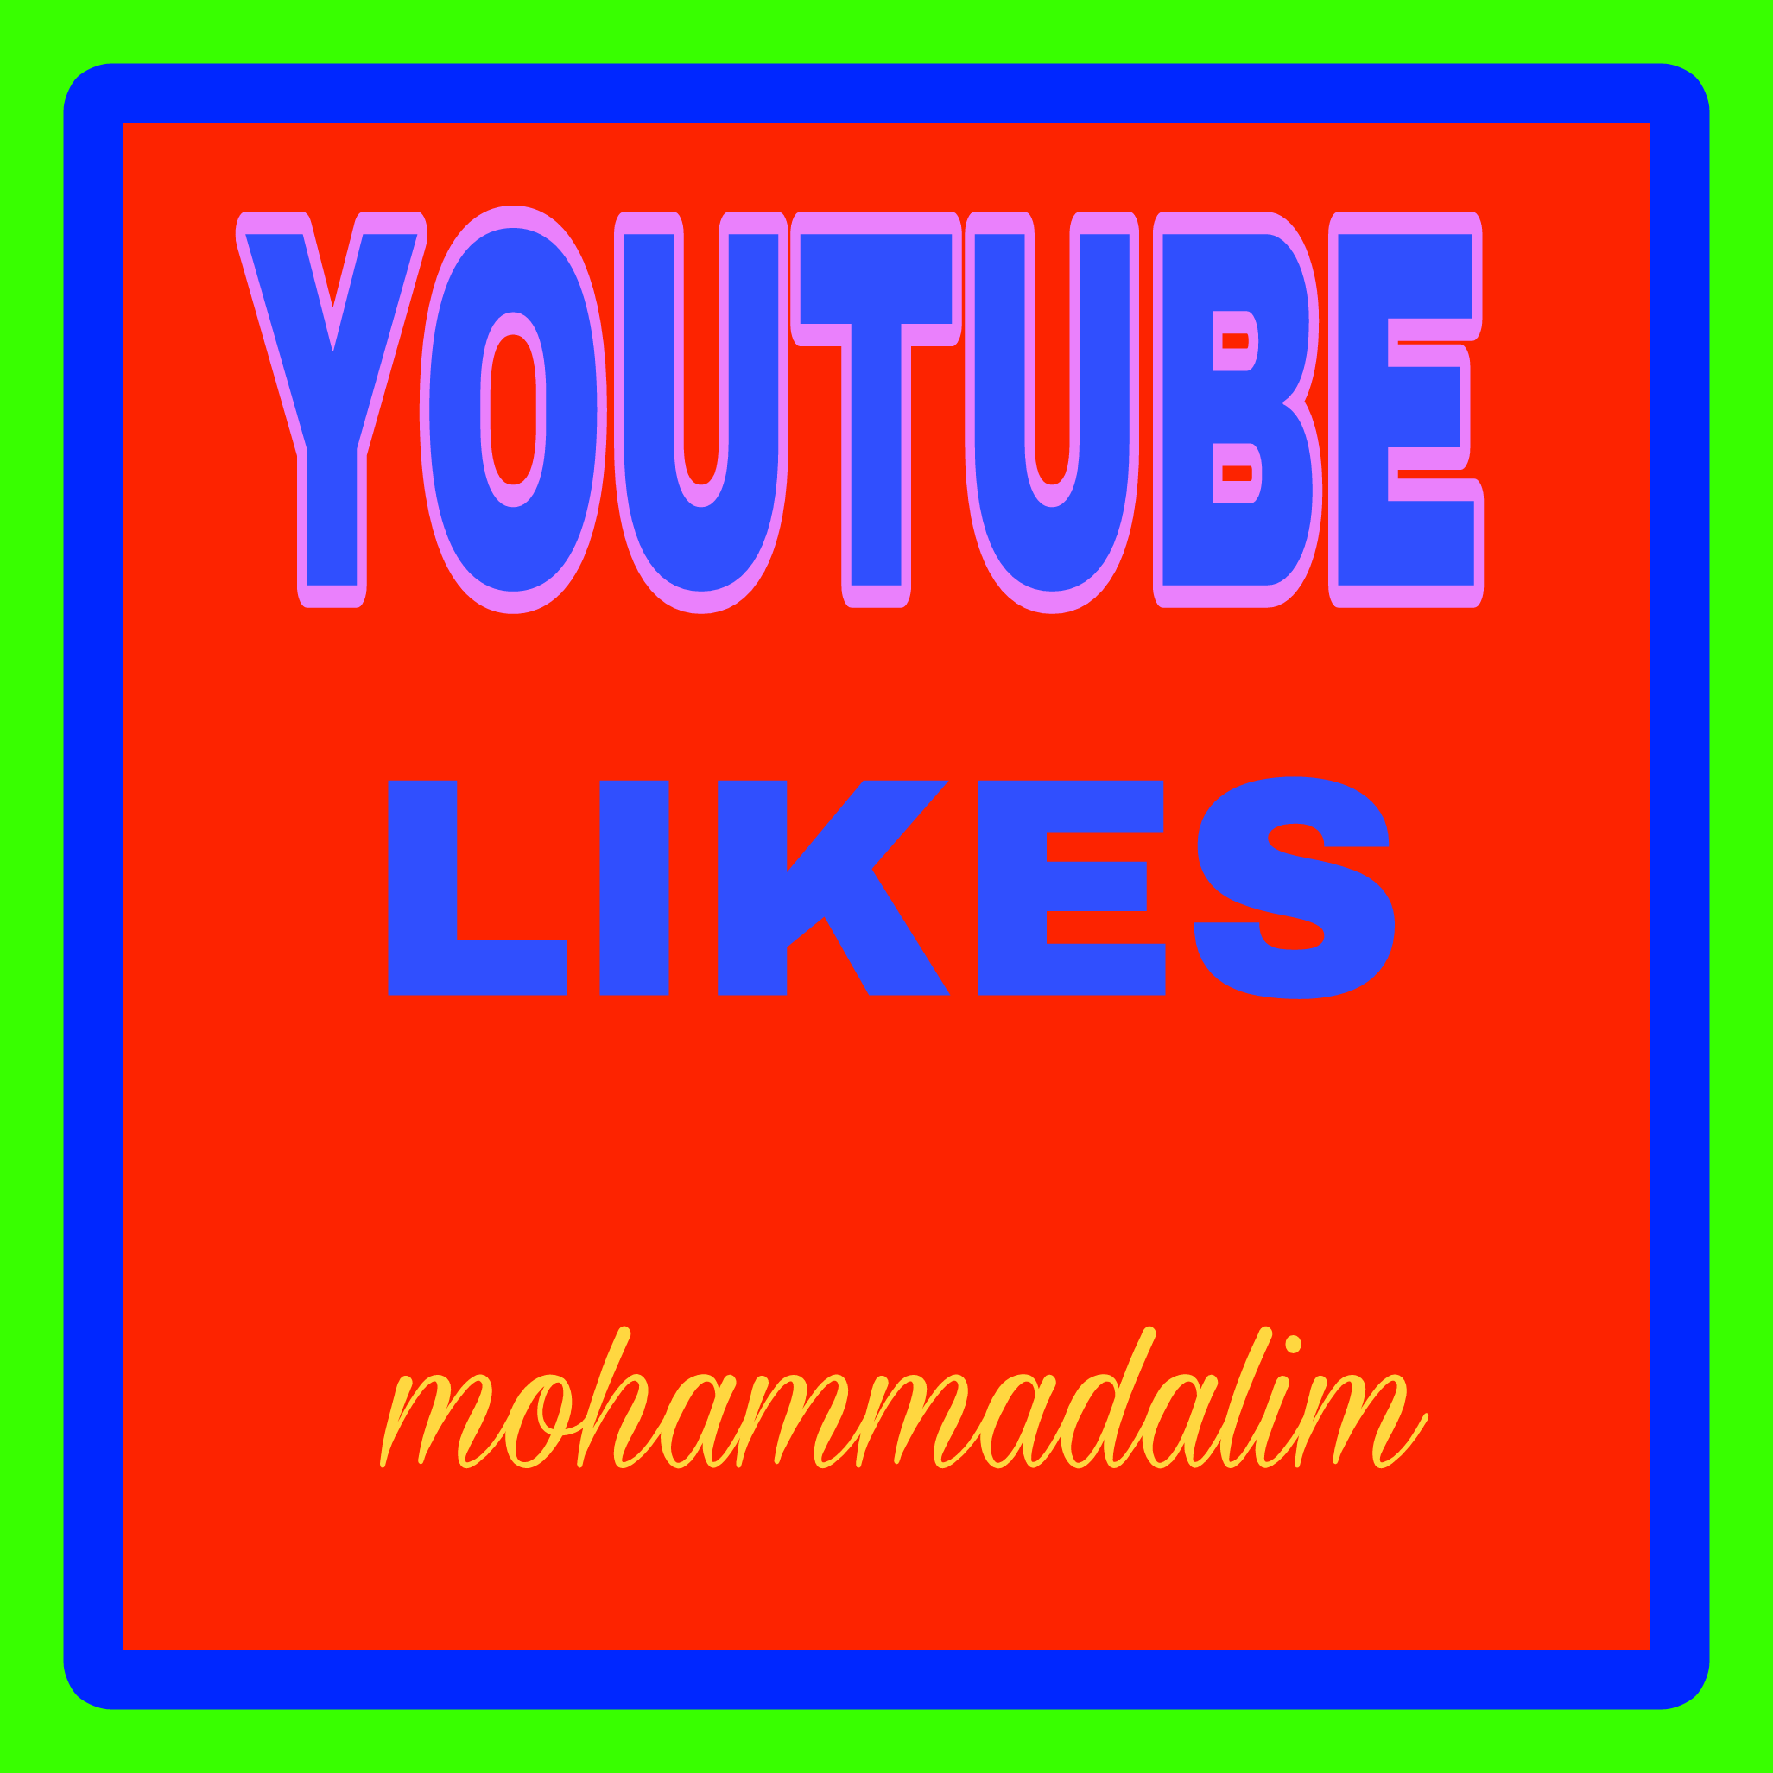 Add 110 youtube video L'ikes and 20 custom comments